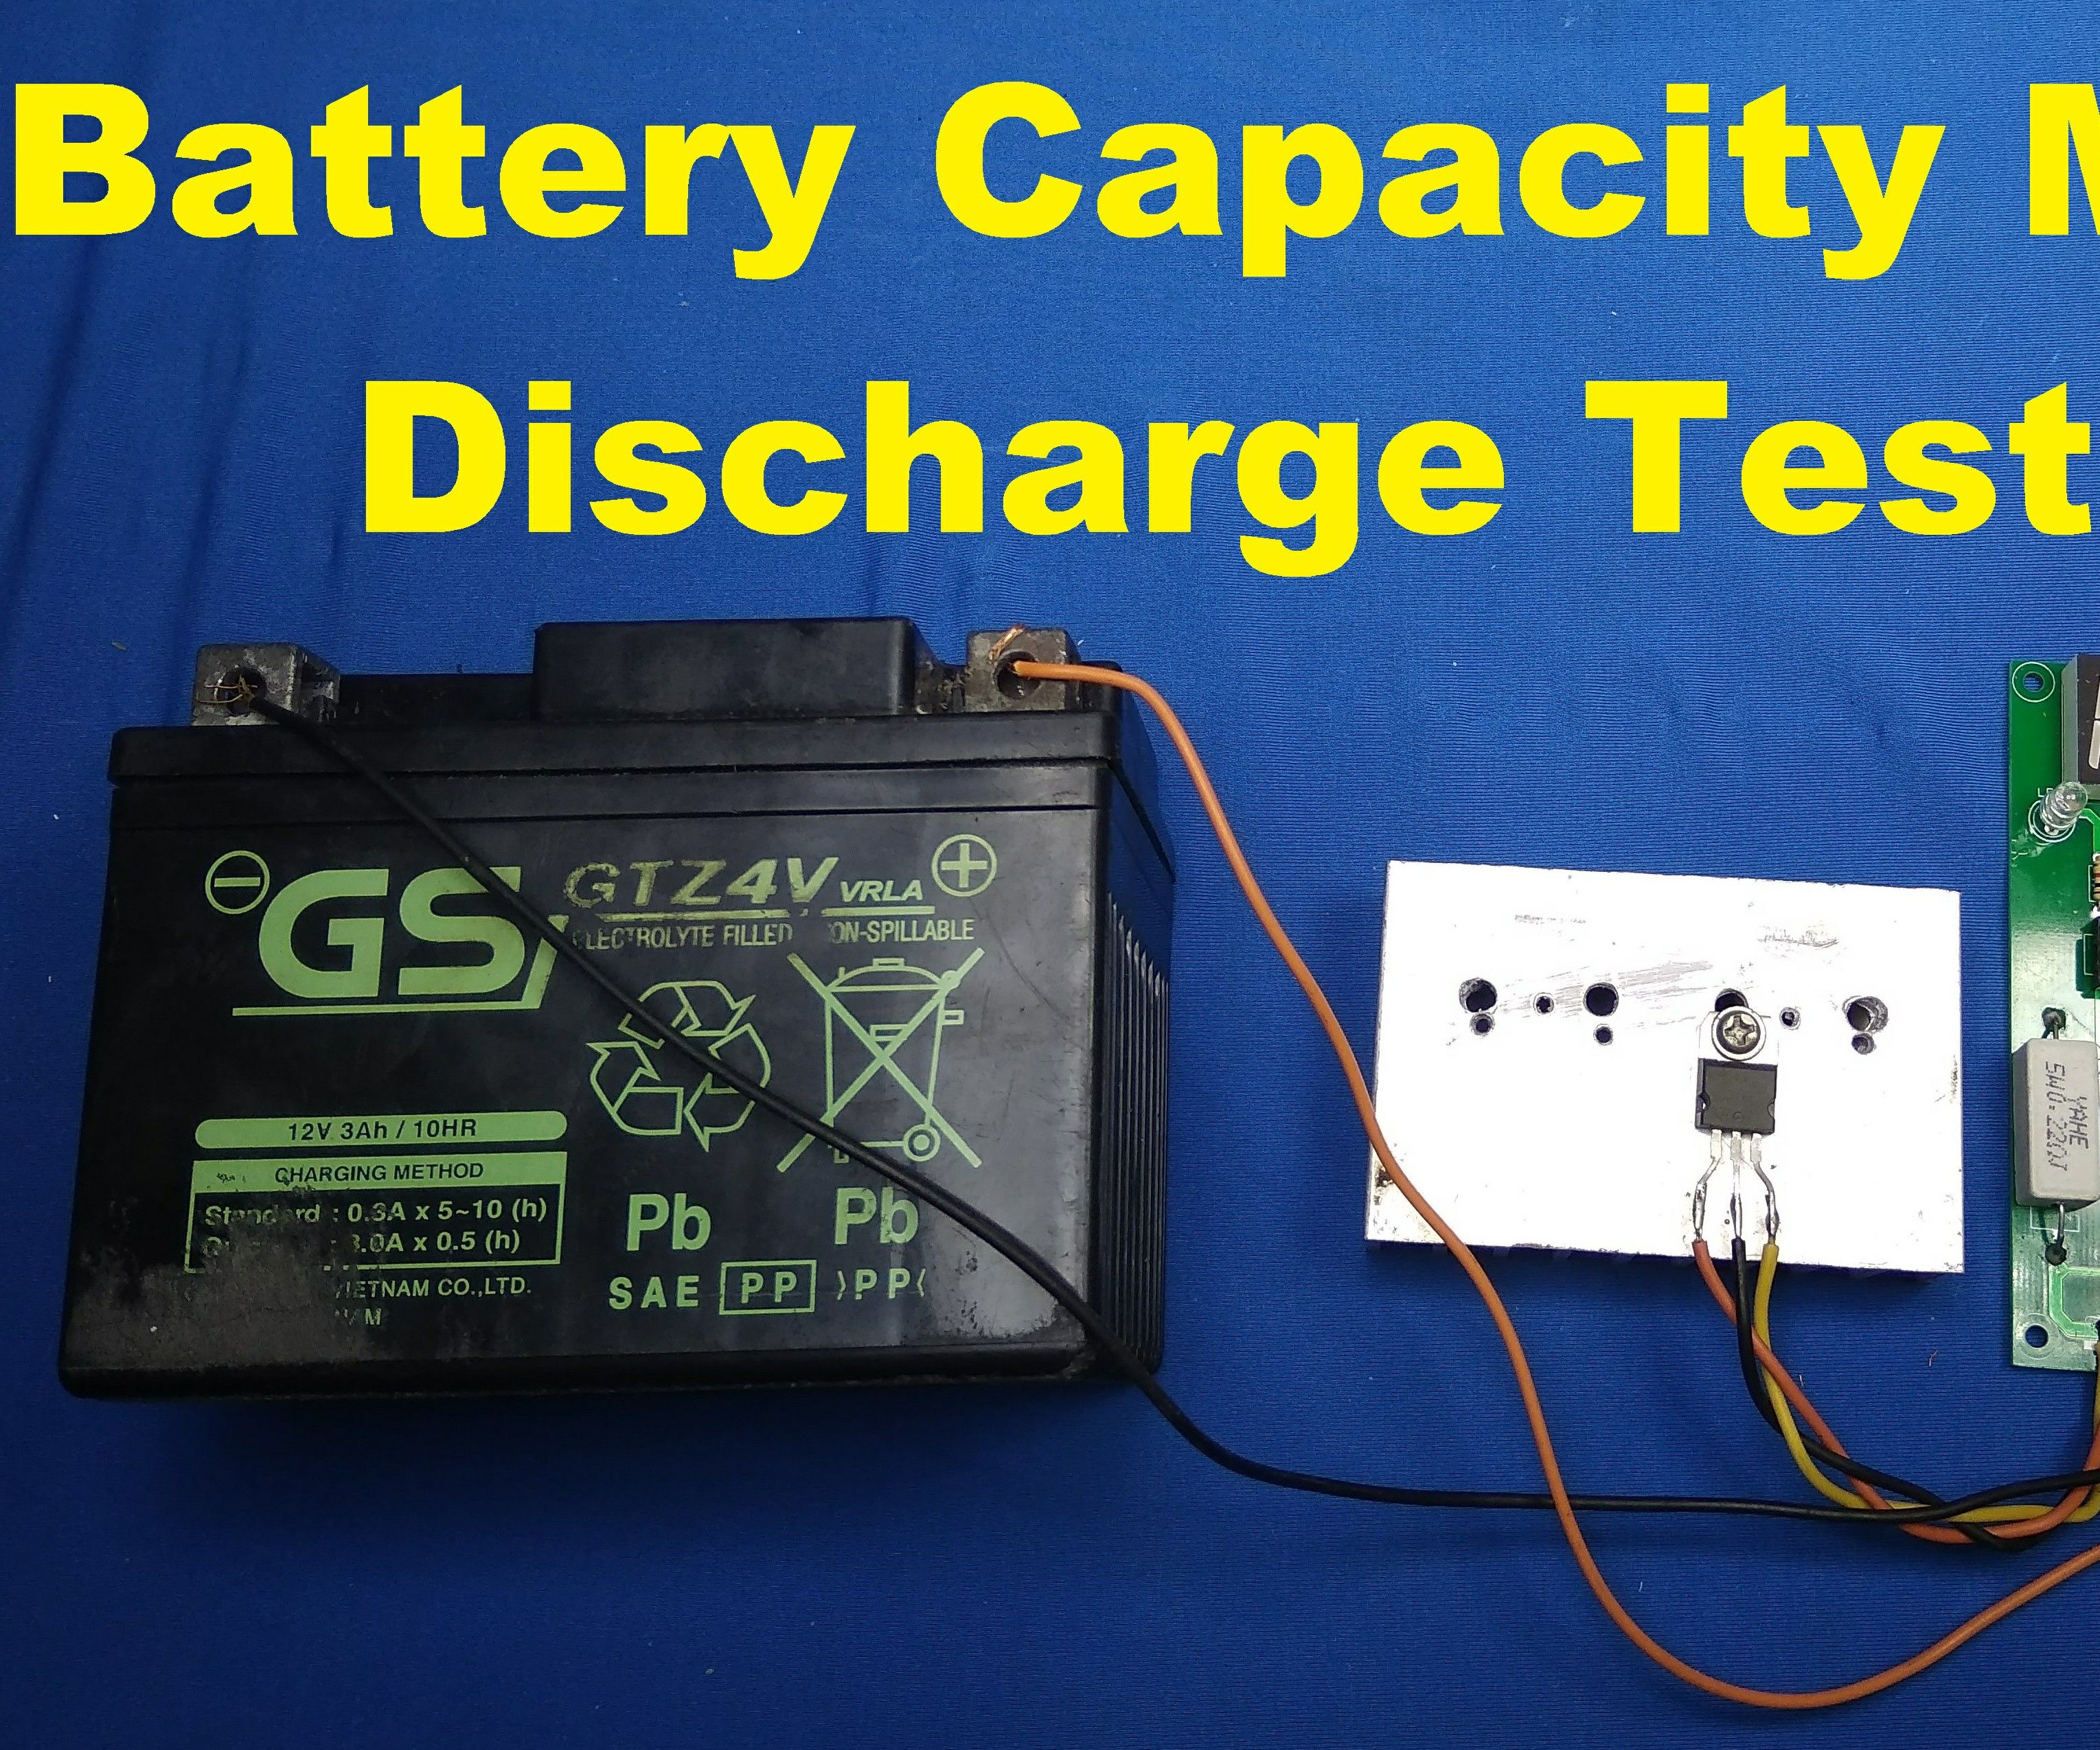 Battery Capacity Meter Discharge Tester | Battery Tester